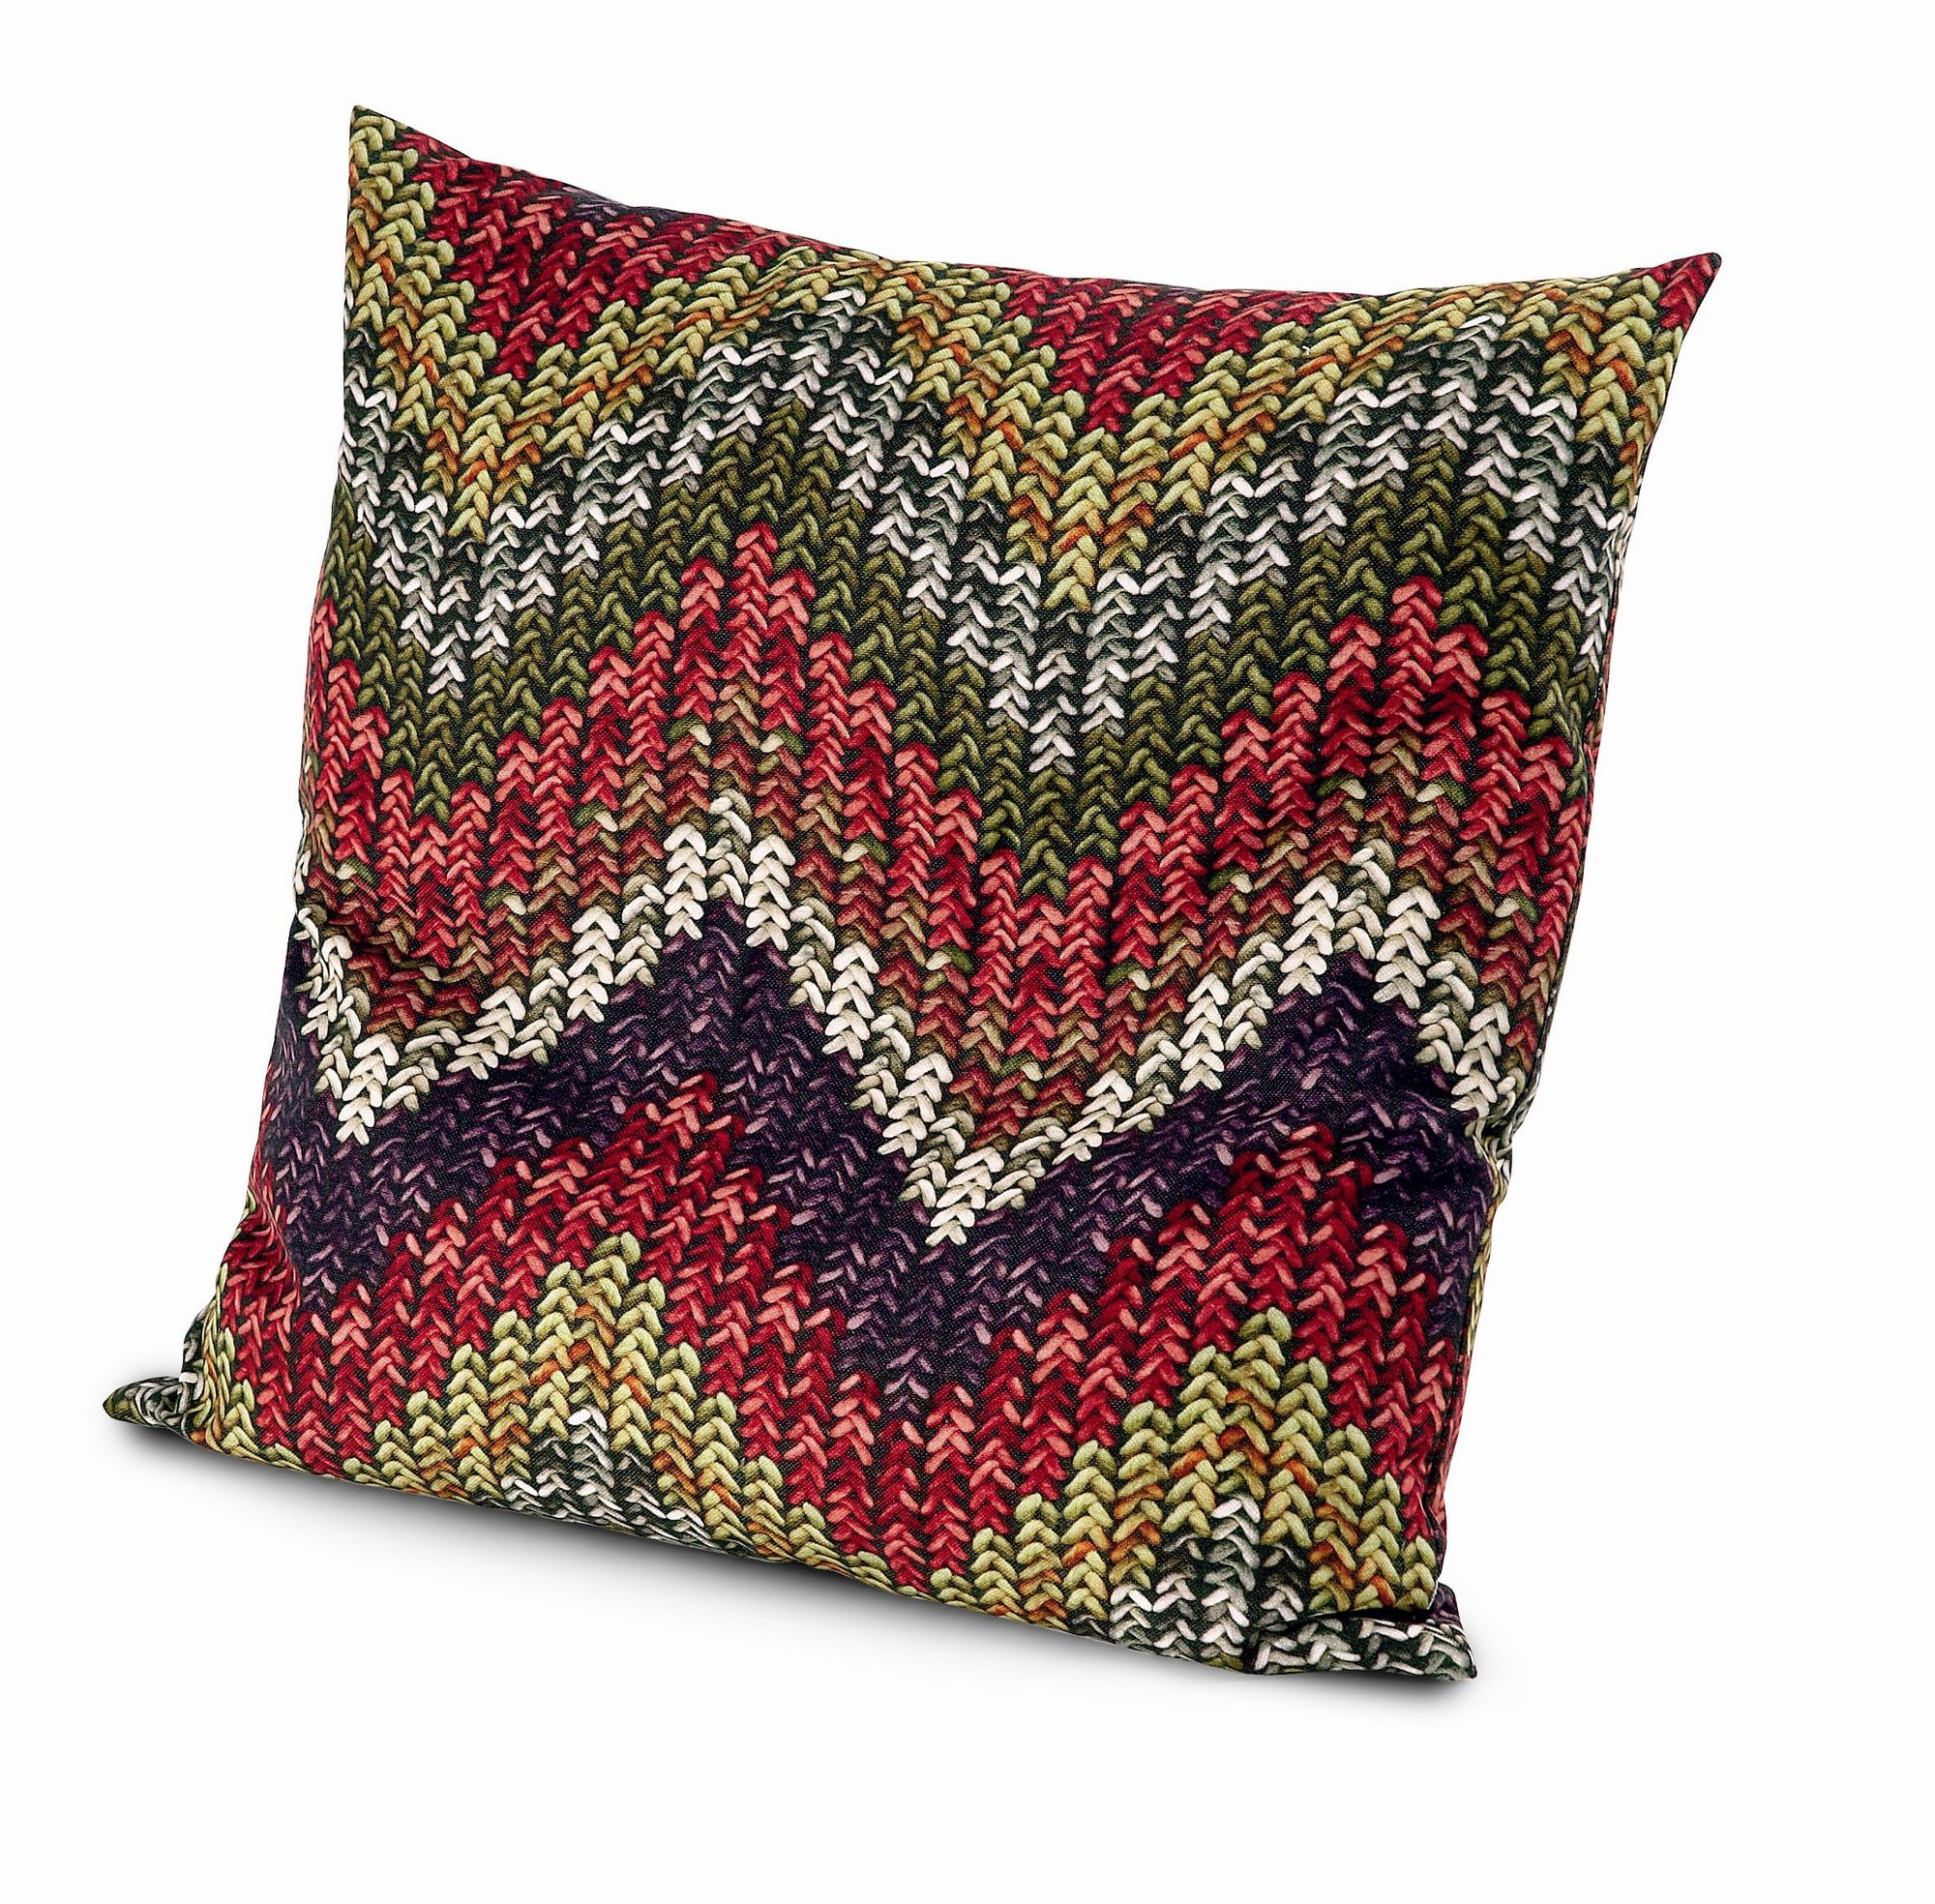 introduces australia home indoor outdoor des sisal first of adorable opens missoni for pillow and accessories in full area furniture rug bed throws rugs pillows poufs carpet blankets size throw all towels archives store other linens